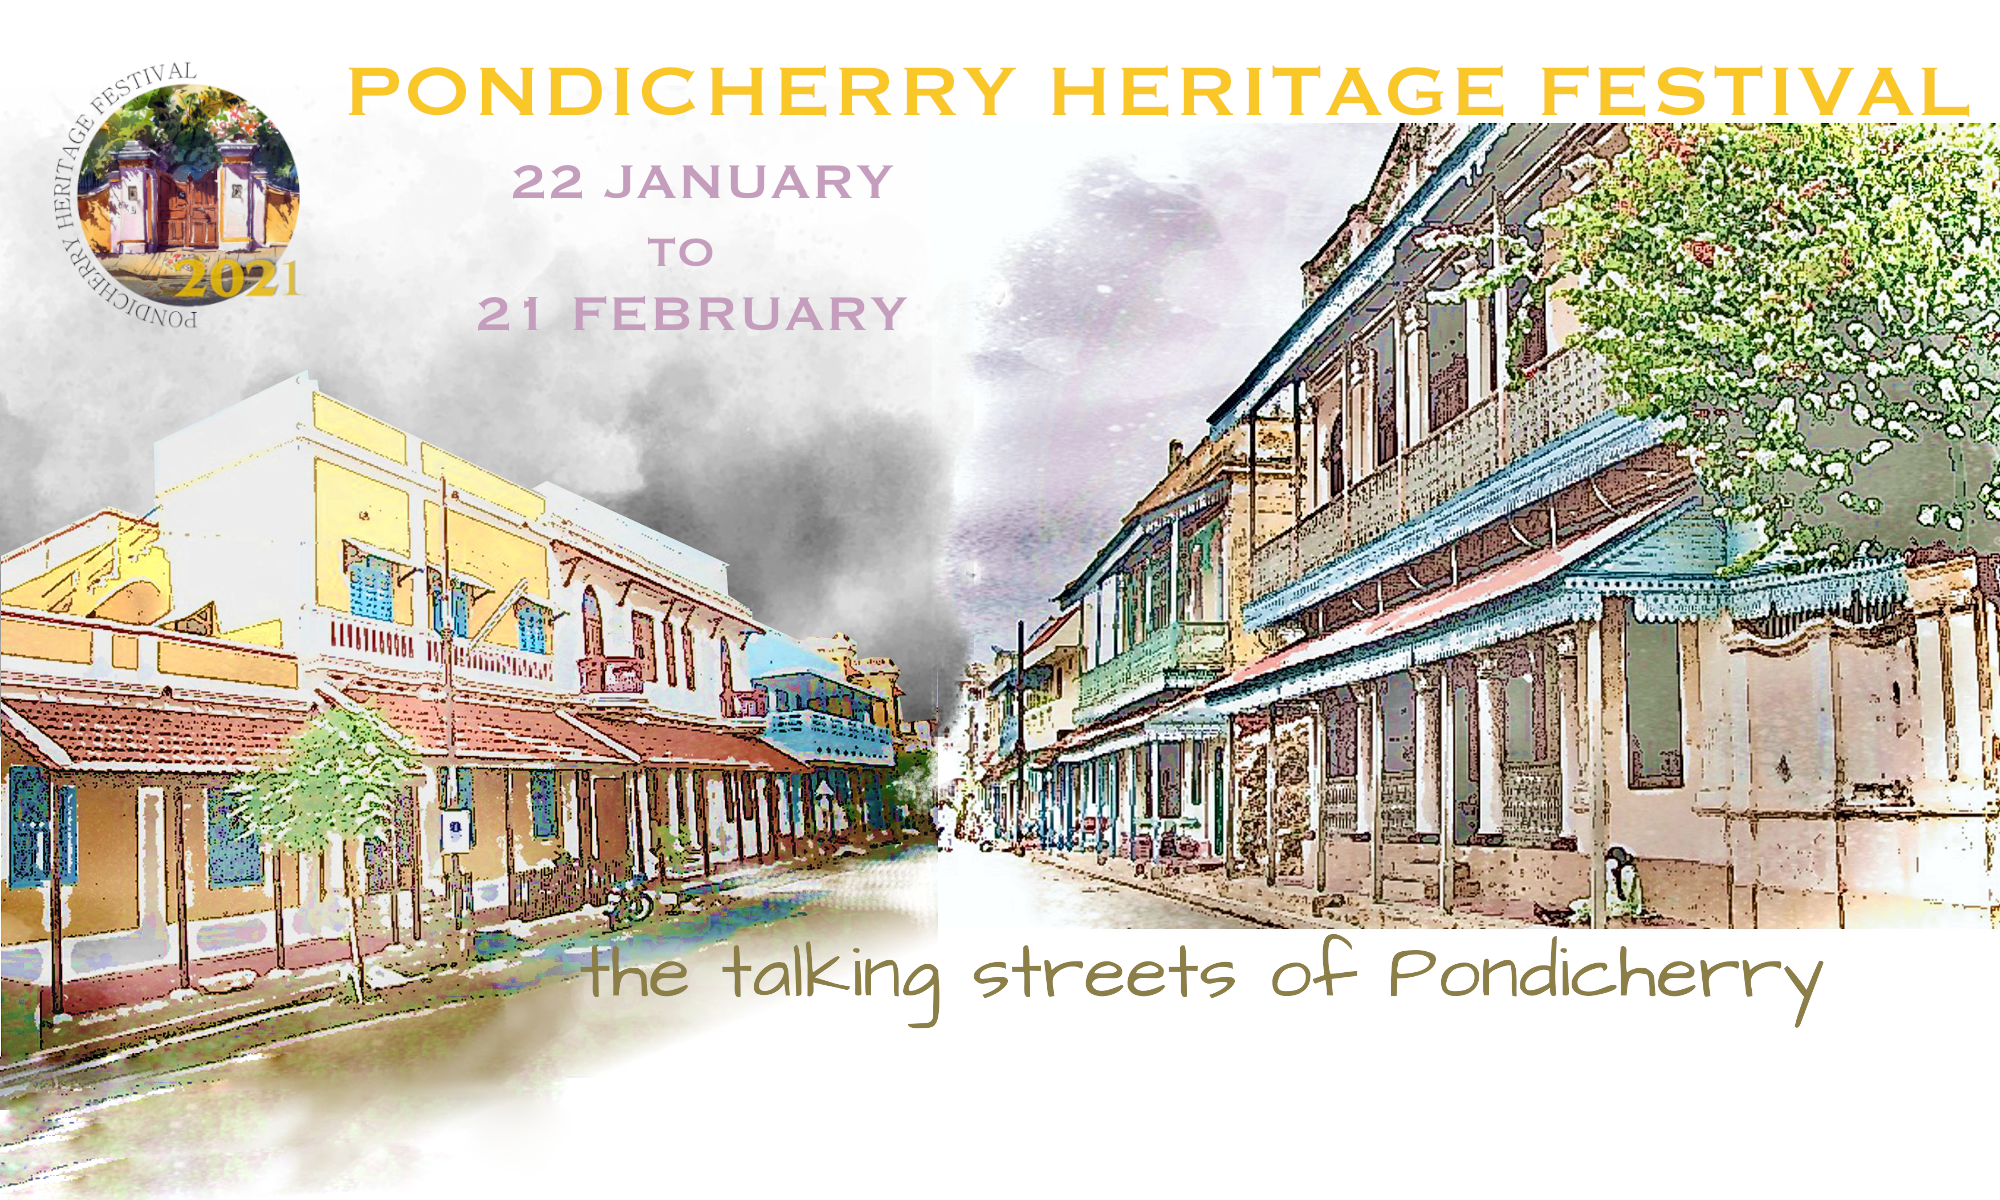 Pondicherry Heritage Festival